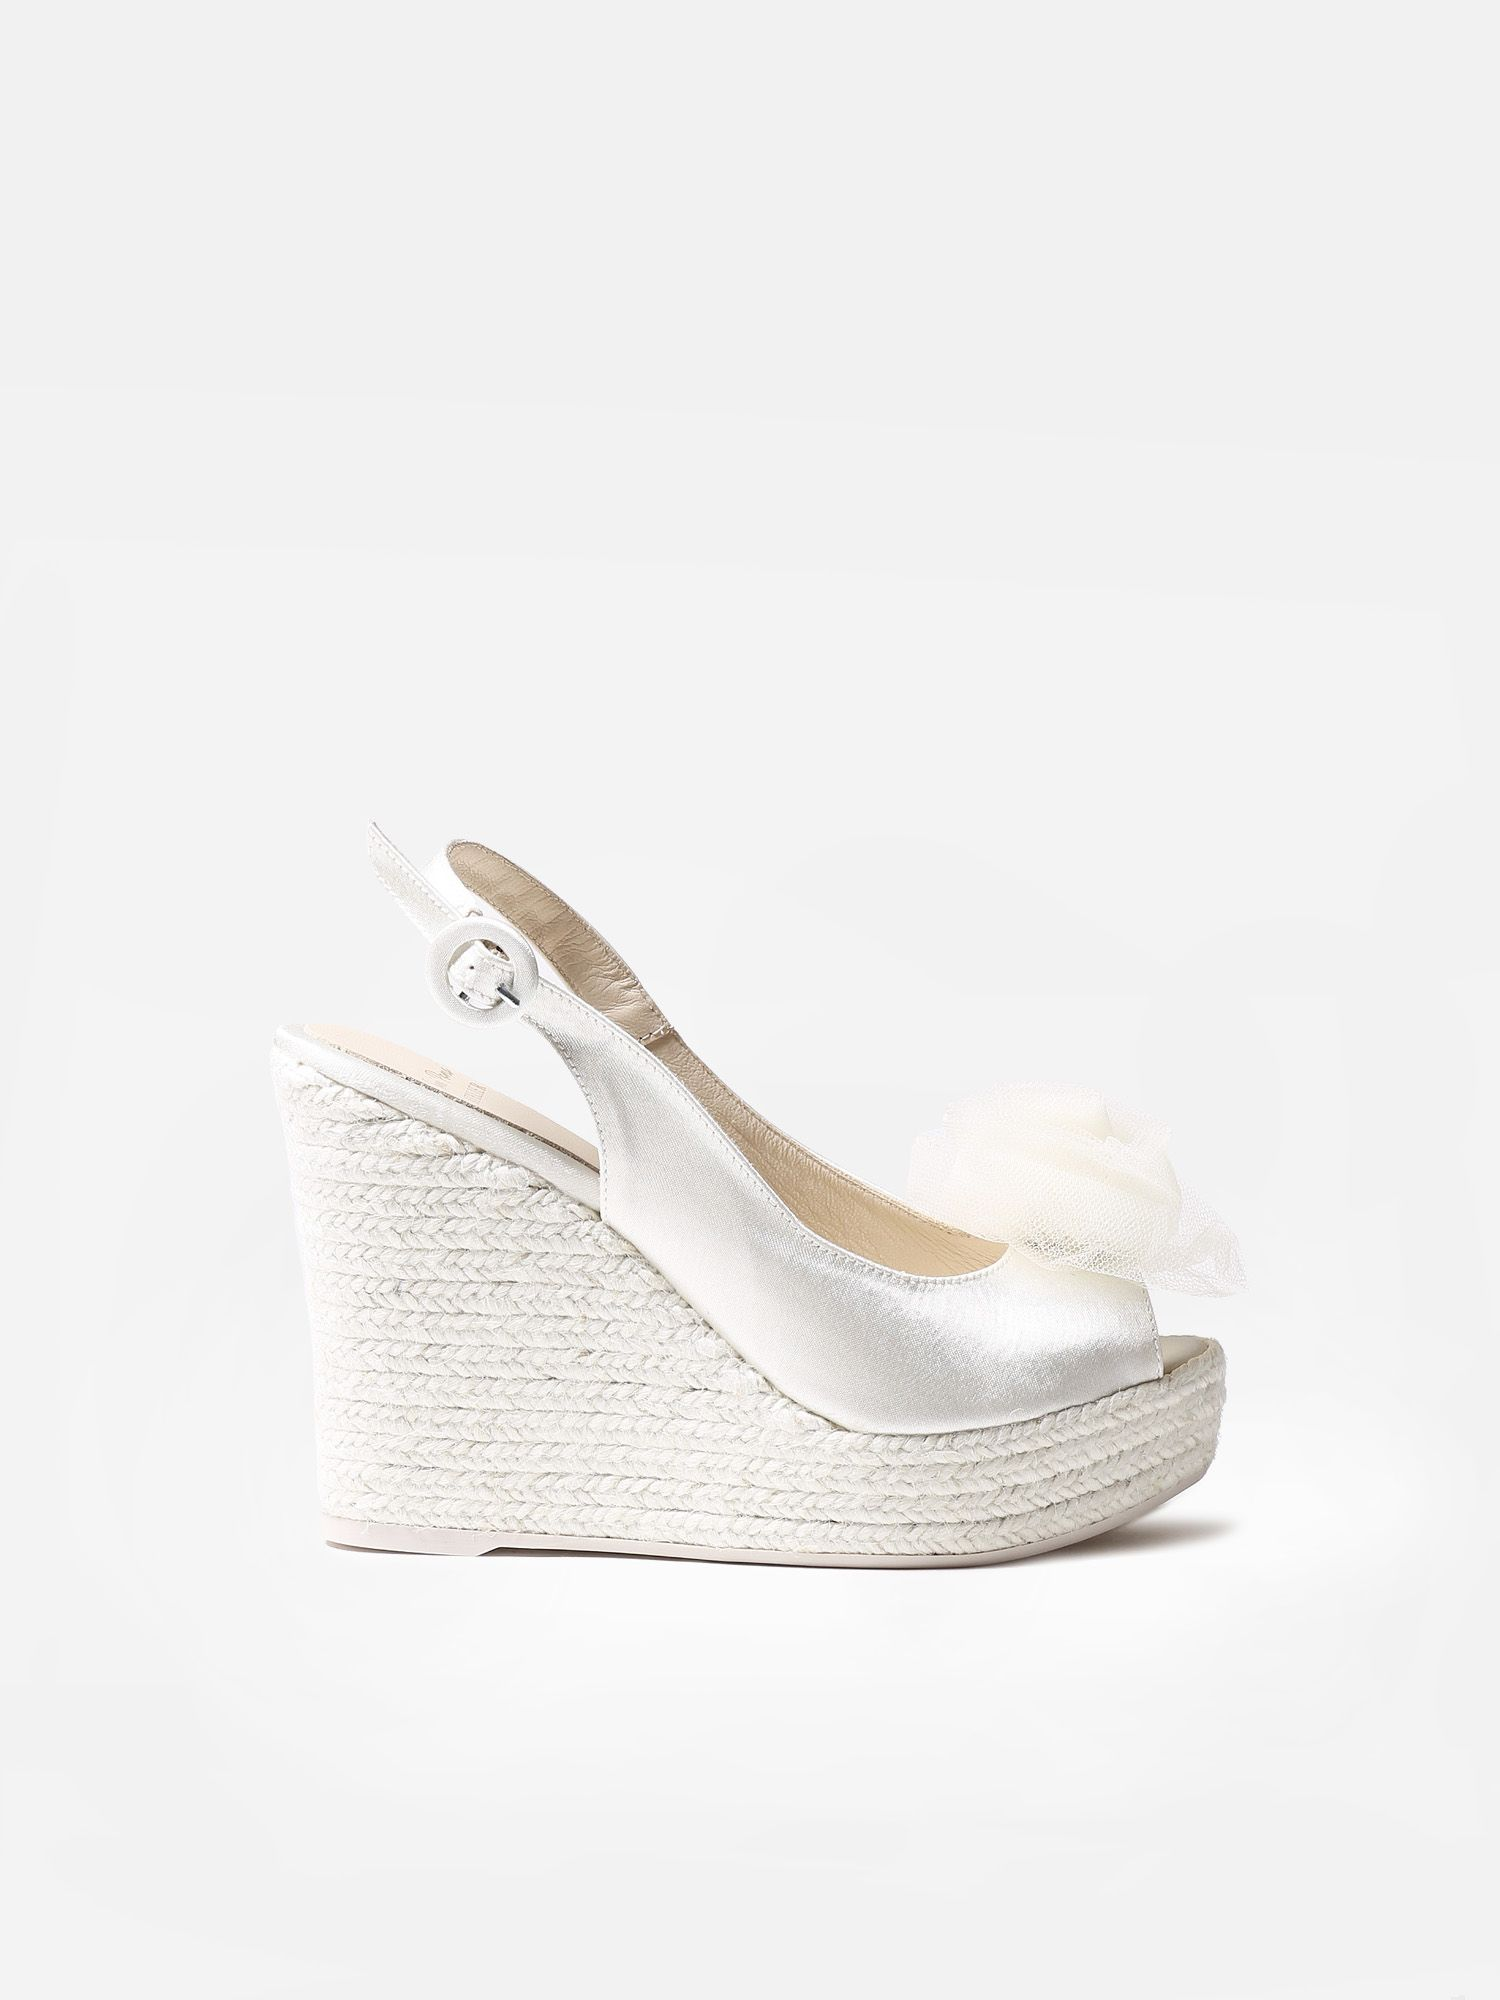 Wedding wedges - JAELA